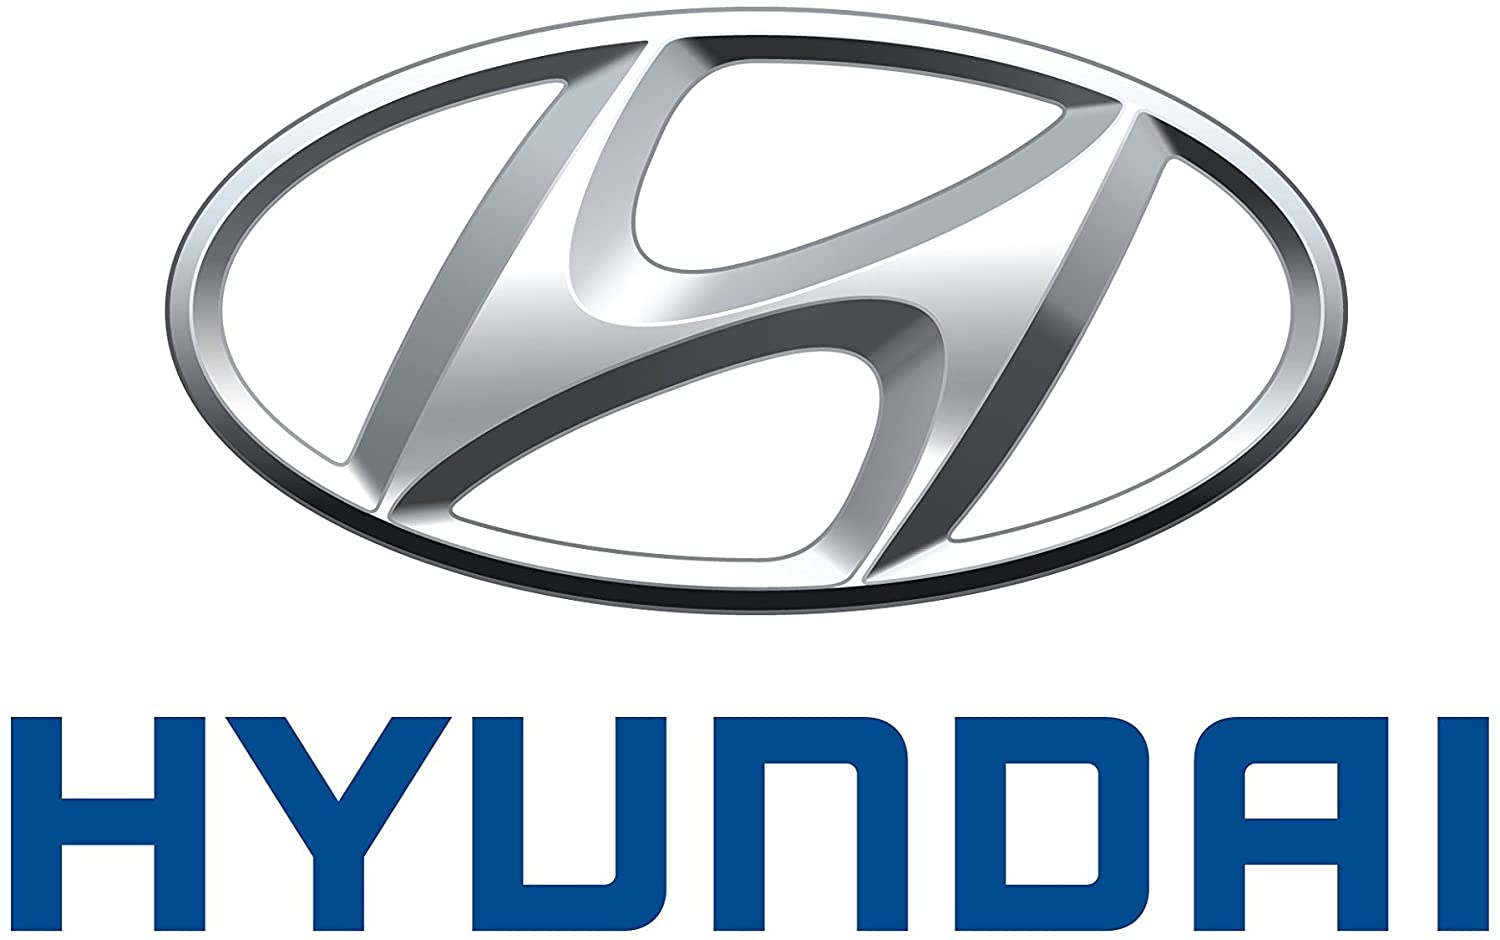 Genuine Hyundai 57540-2B100 Power Steering Cooler Tube Assembly